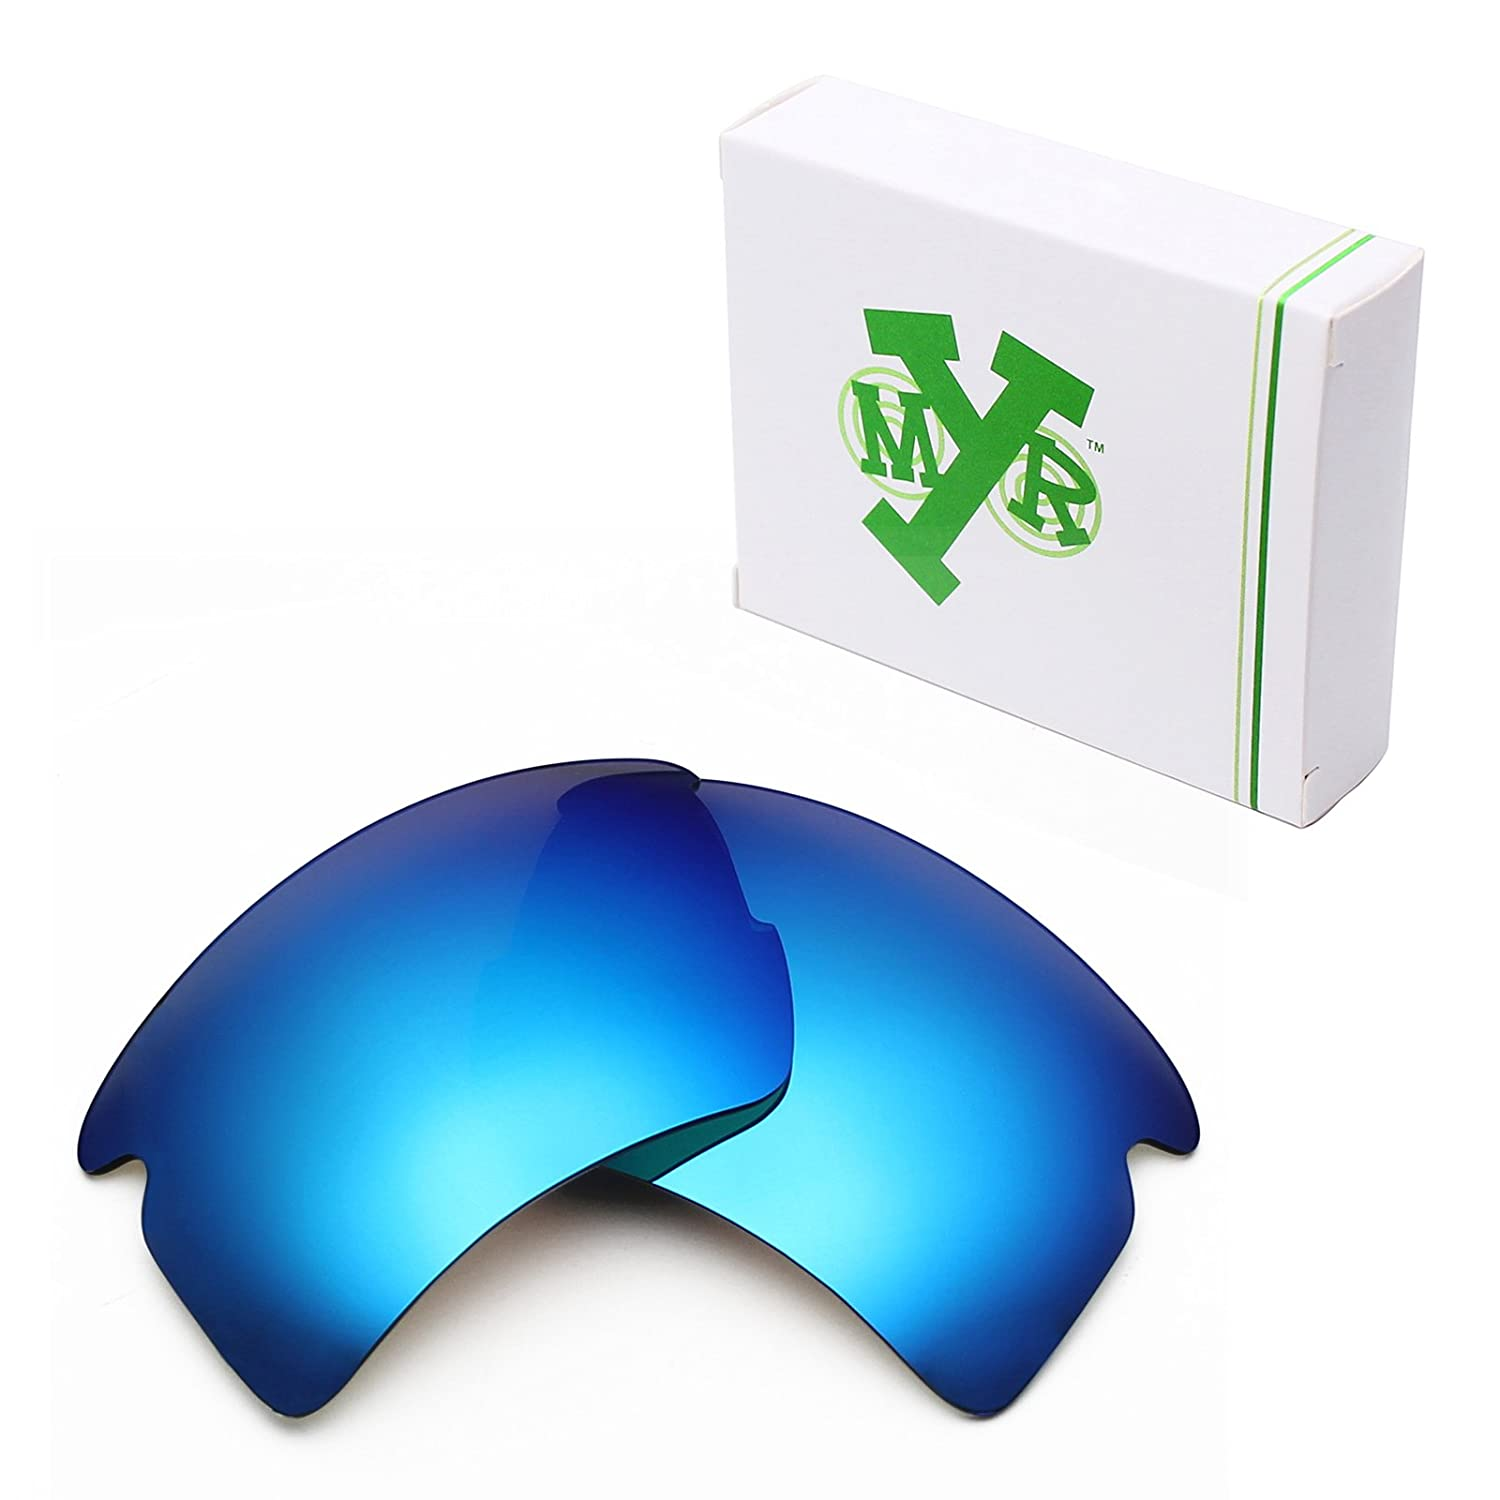 MRY POLARIZED Replacement Lenses for Oakley Flak 2.0 XL Sunglasses - Options